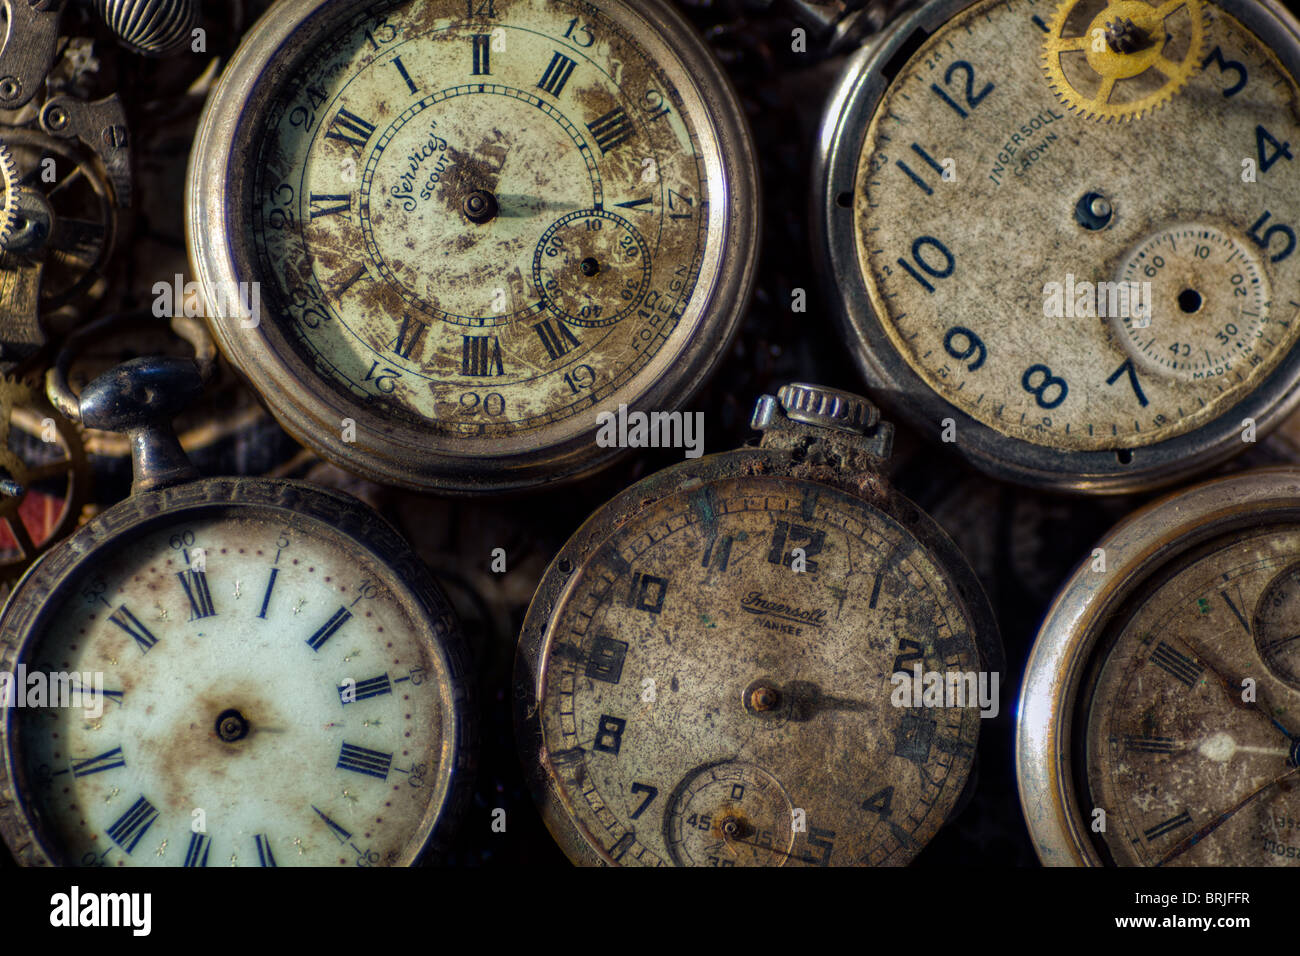 Broken old pocket watches and parts - Stock Image